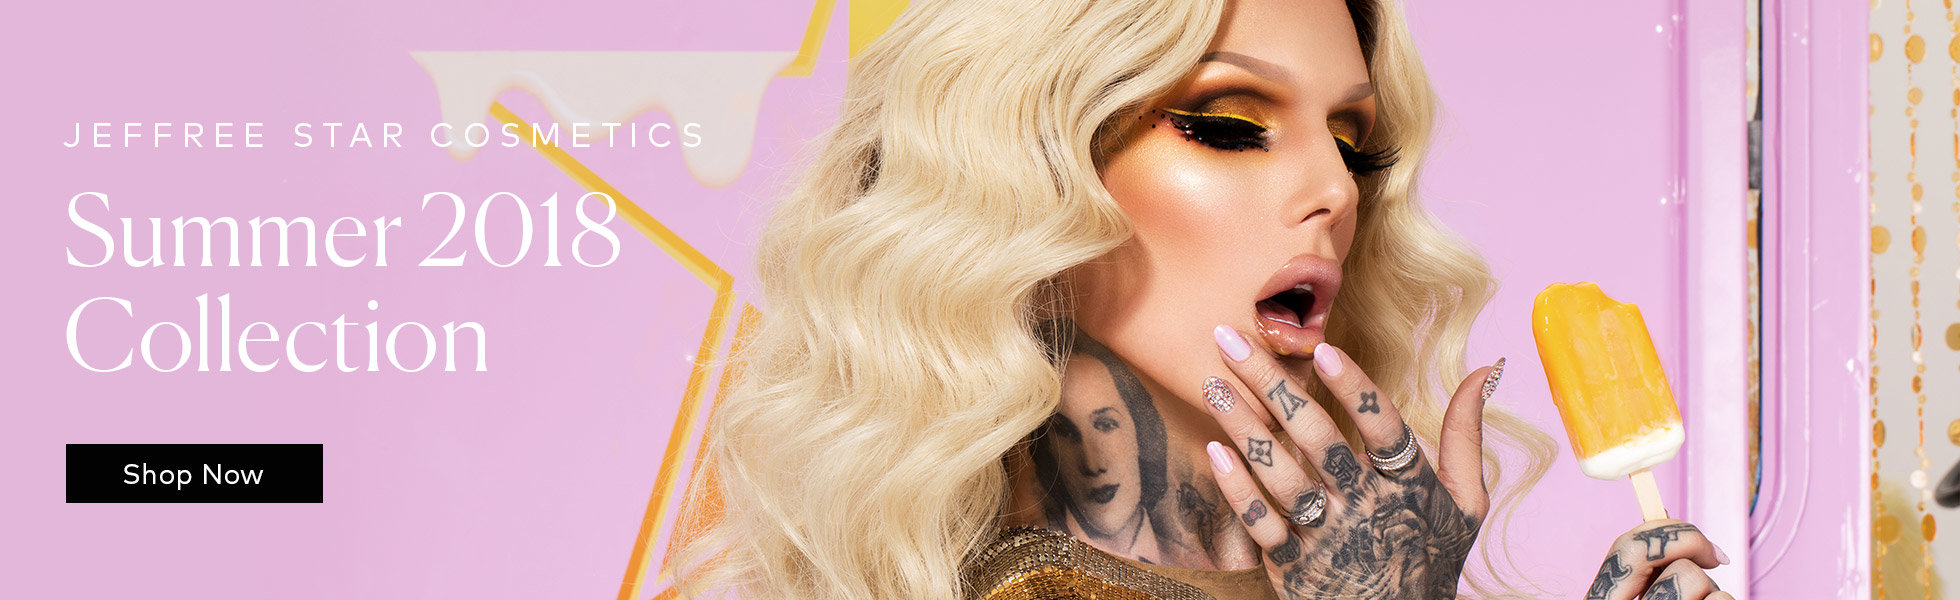 Jeffree Star Cosmetics: Summer 2018 Collection